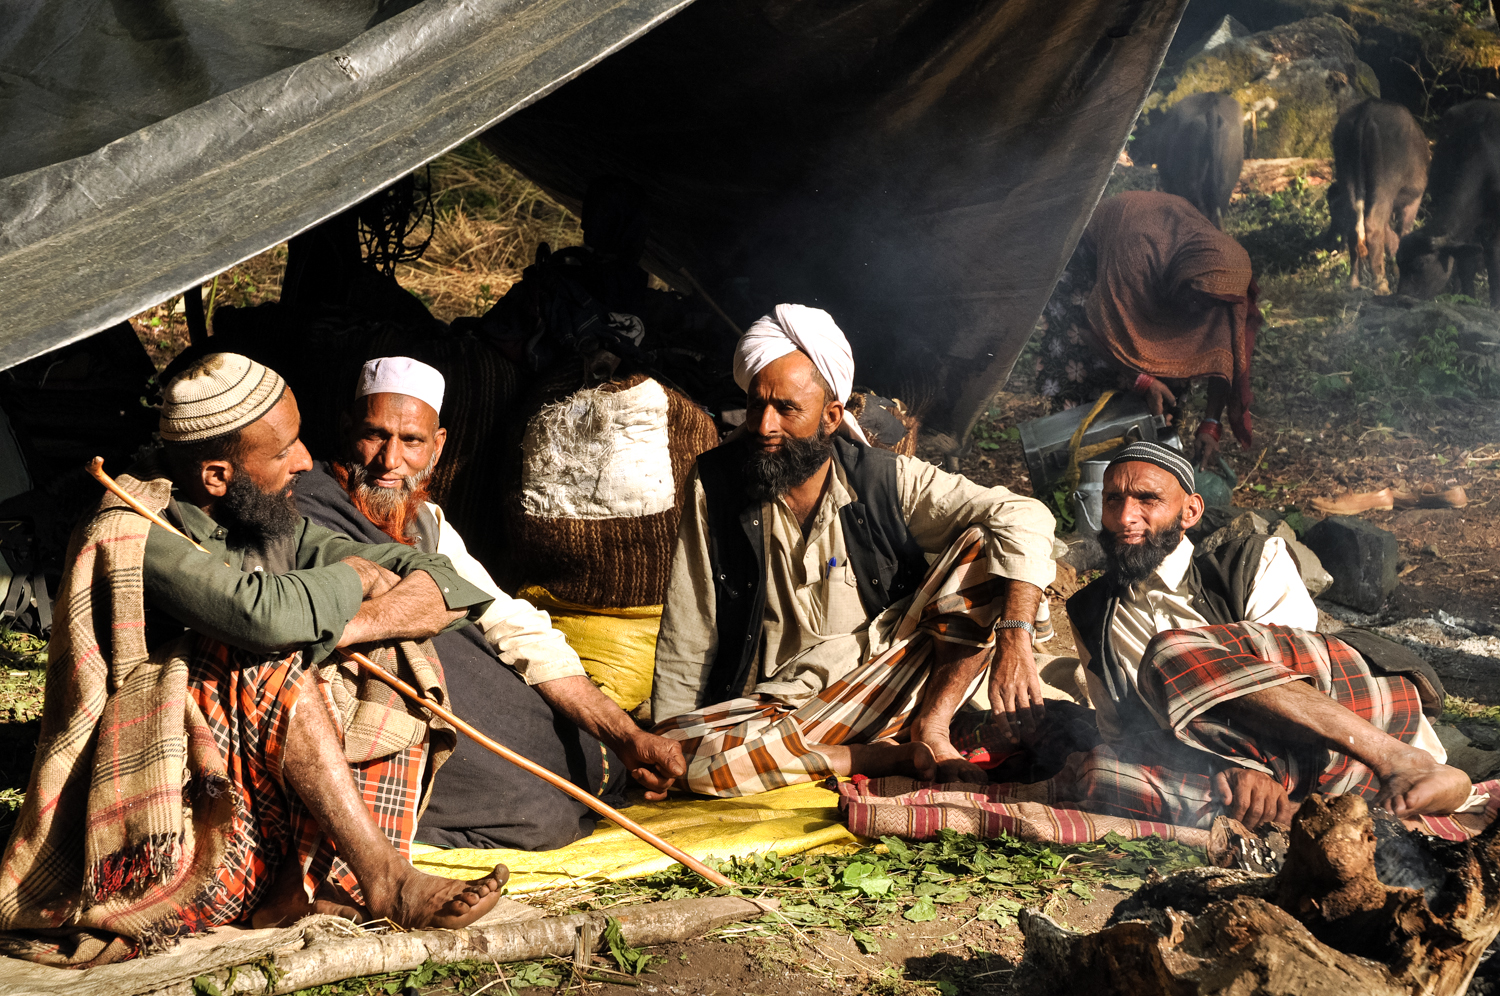 At a forest camp in the Himalayan foothills, Van Gujjar men discuss their plan for moving higher into the mountains, to the alpine meadows where they will spend the summer. The trick will be avoiding - or successfully bribing - the forest rangers, who will surely hassle the nomads if they meet.